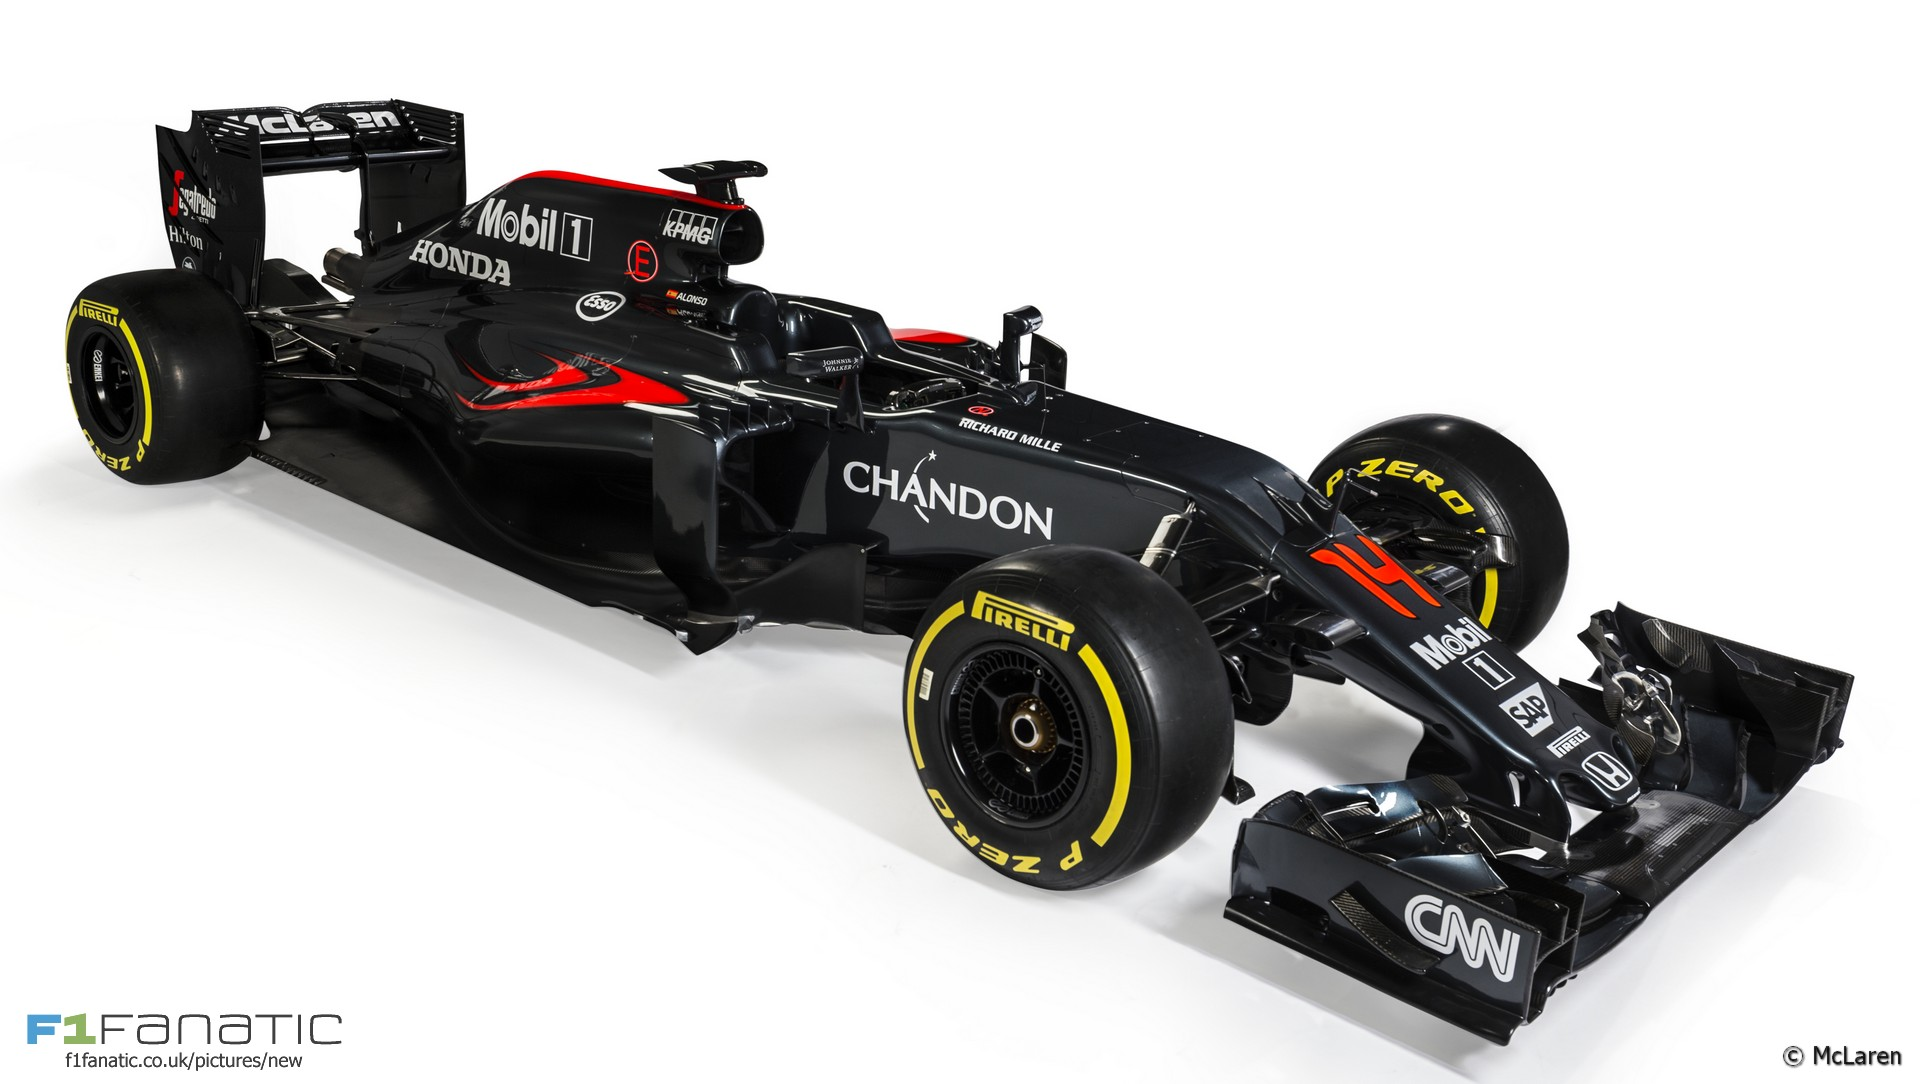 f1 new car releaseMcLaren announce MP432 car launch date  F1 Fanatic